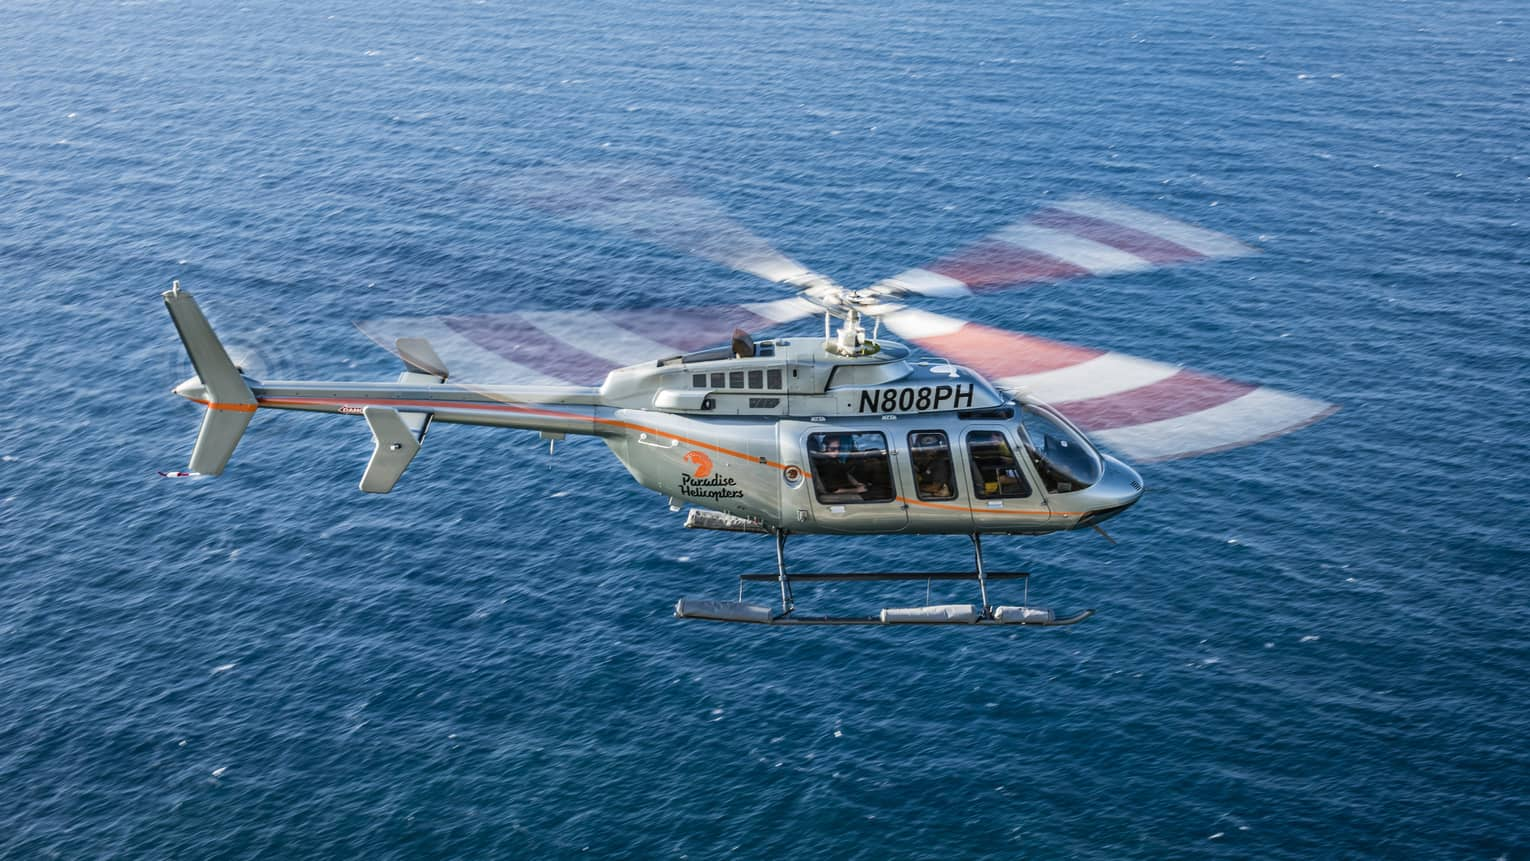 Helicopter flying over blue ocean